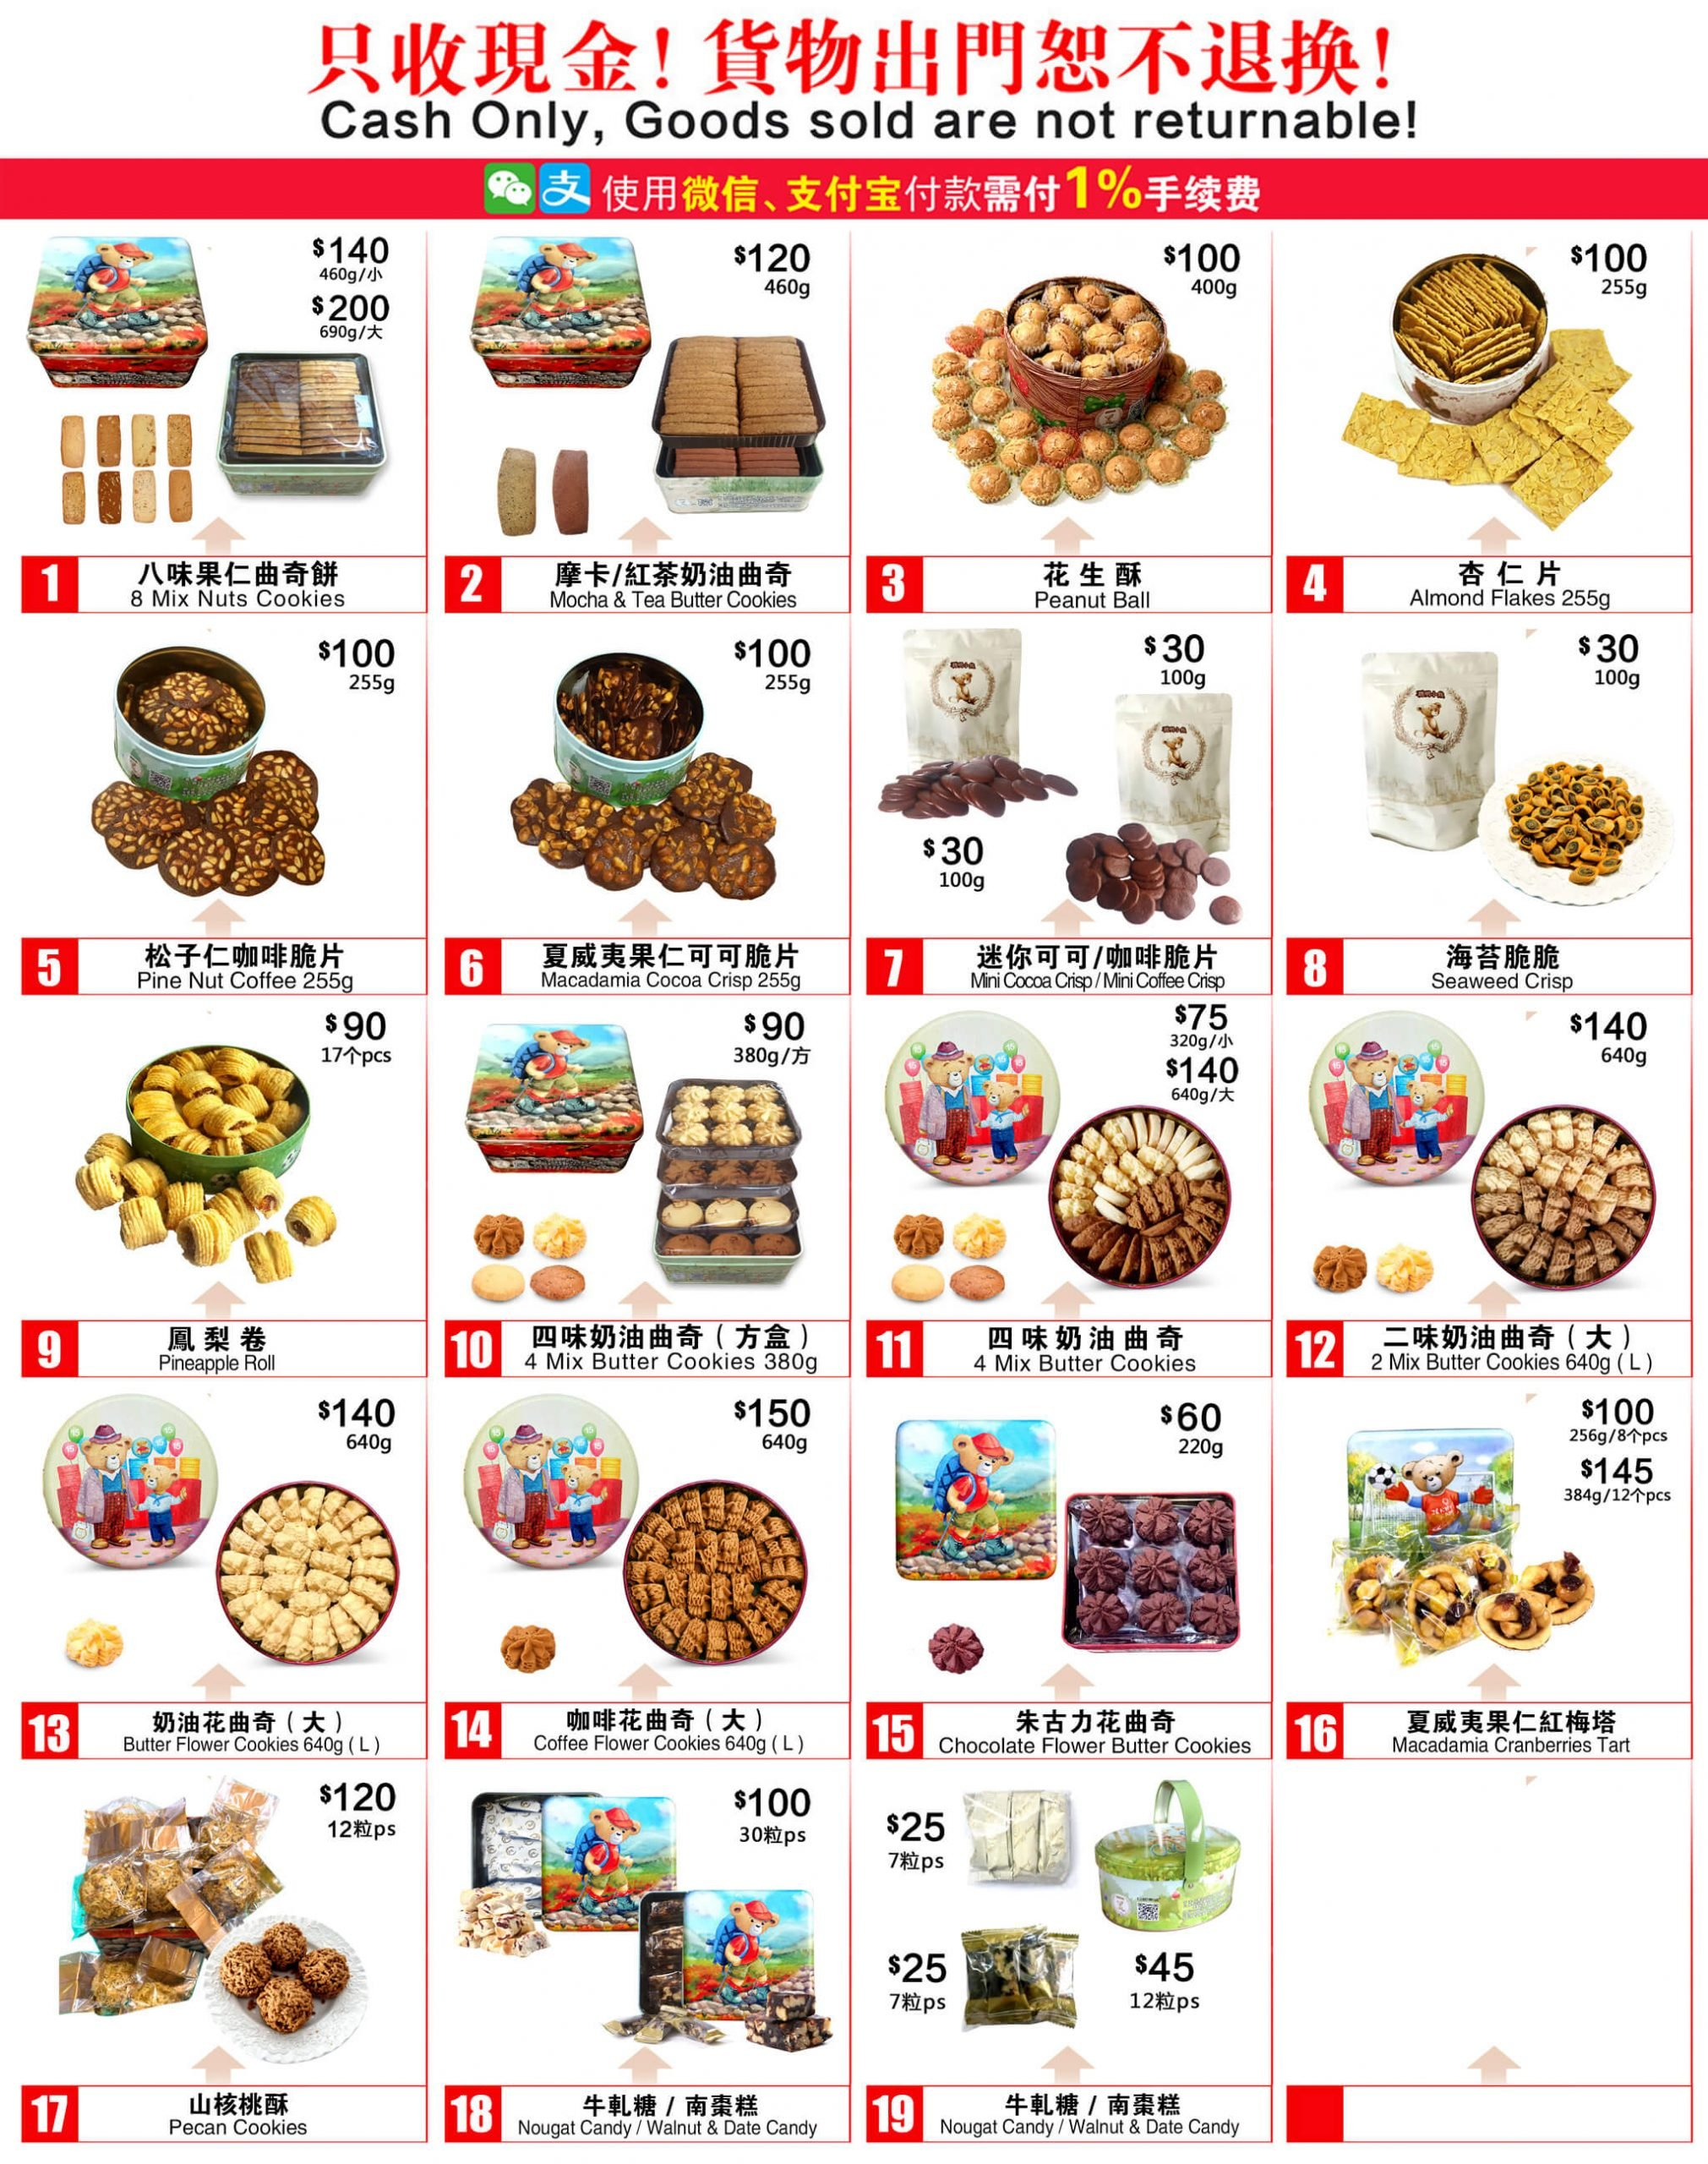 Jenny Bakery Catalog & Pricing in Hong Kong (Effective 1st Mar 2018)